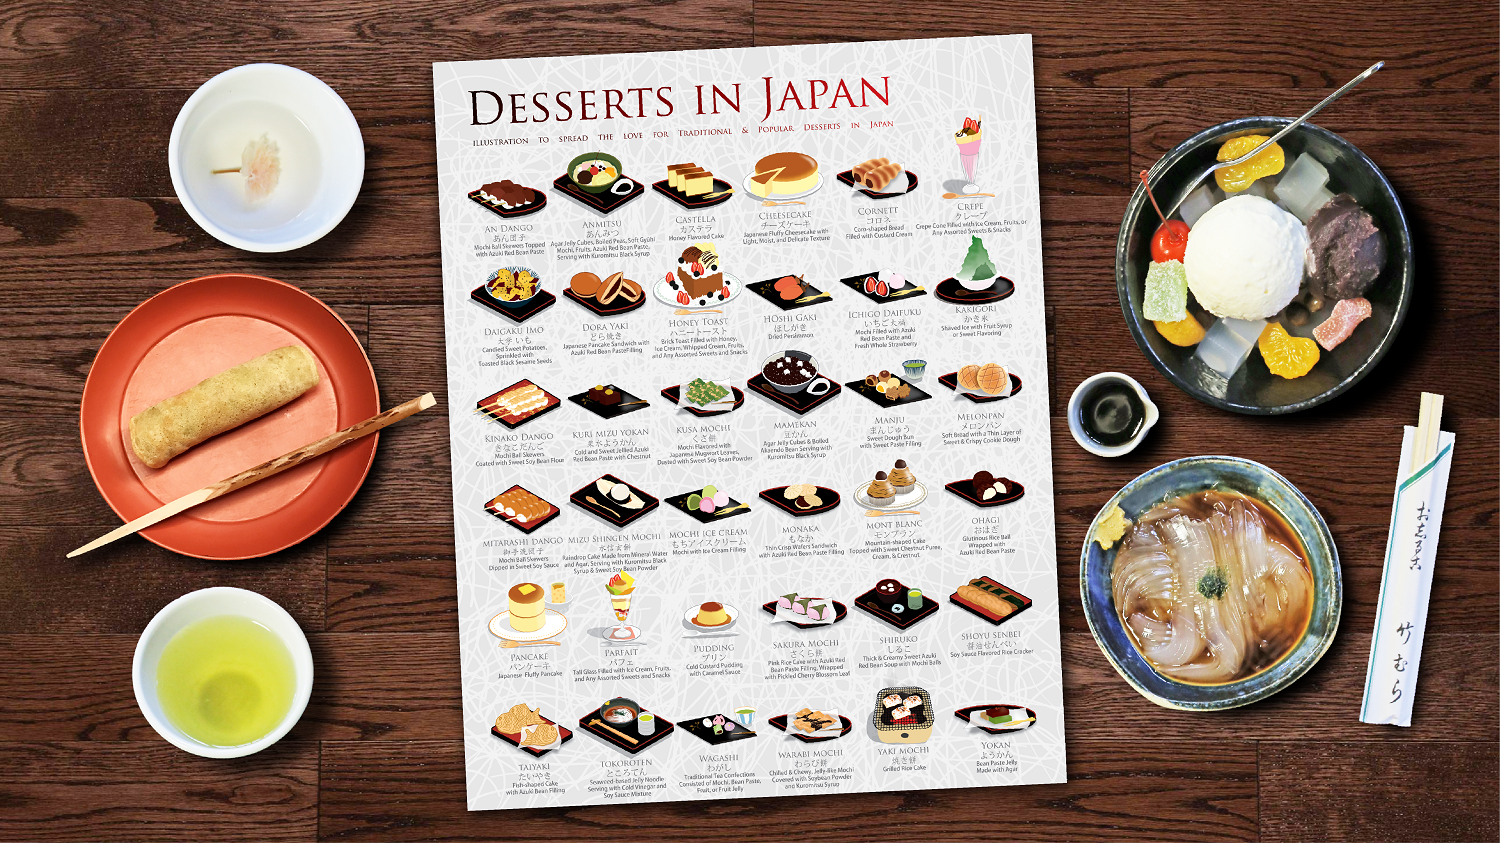 Desserts in Japan poster with 36 traditonal confections